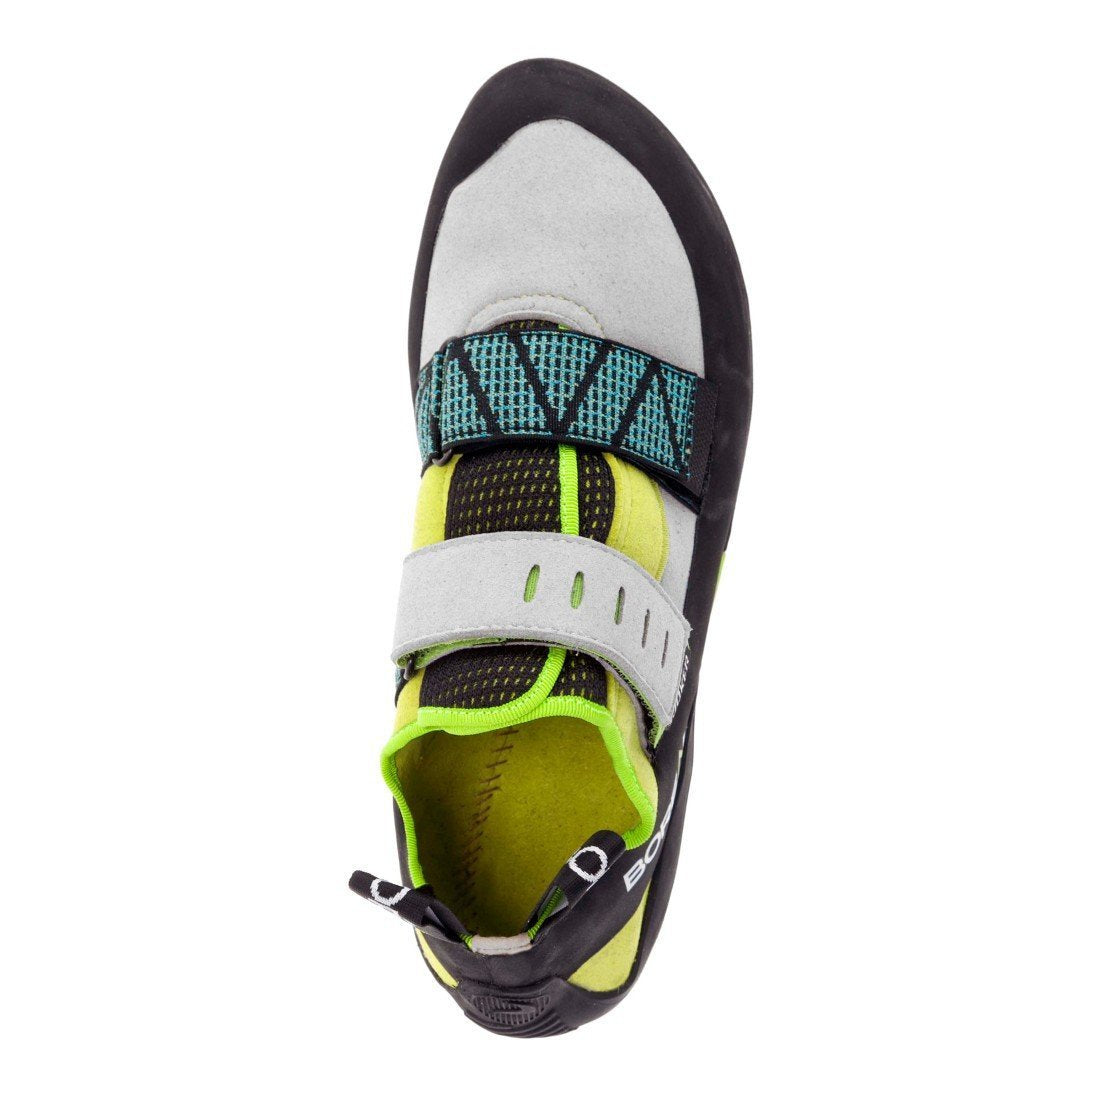 Boreal Alpha VC climbing shoe birds eye view